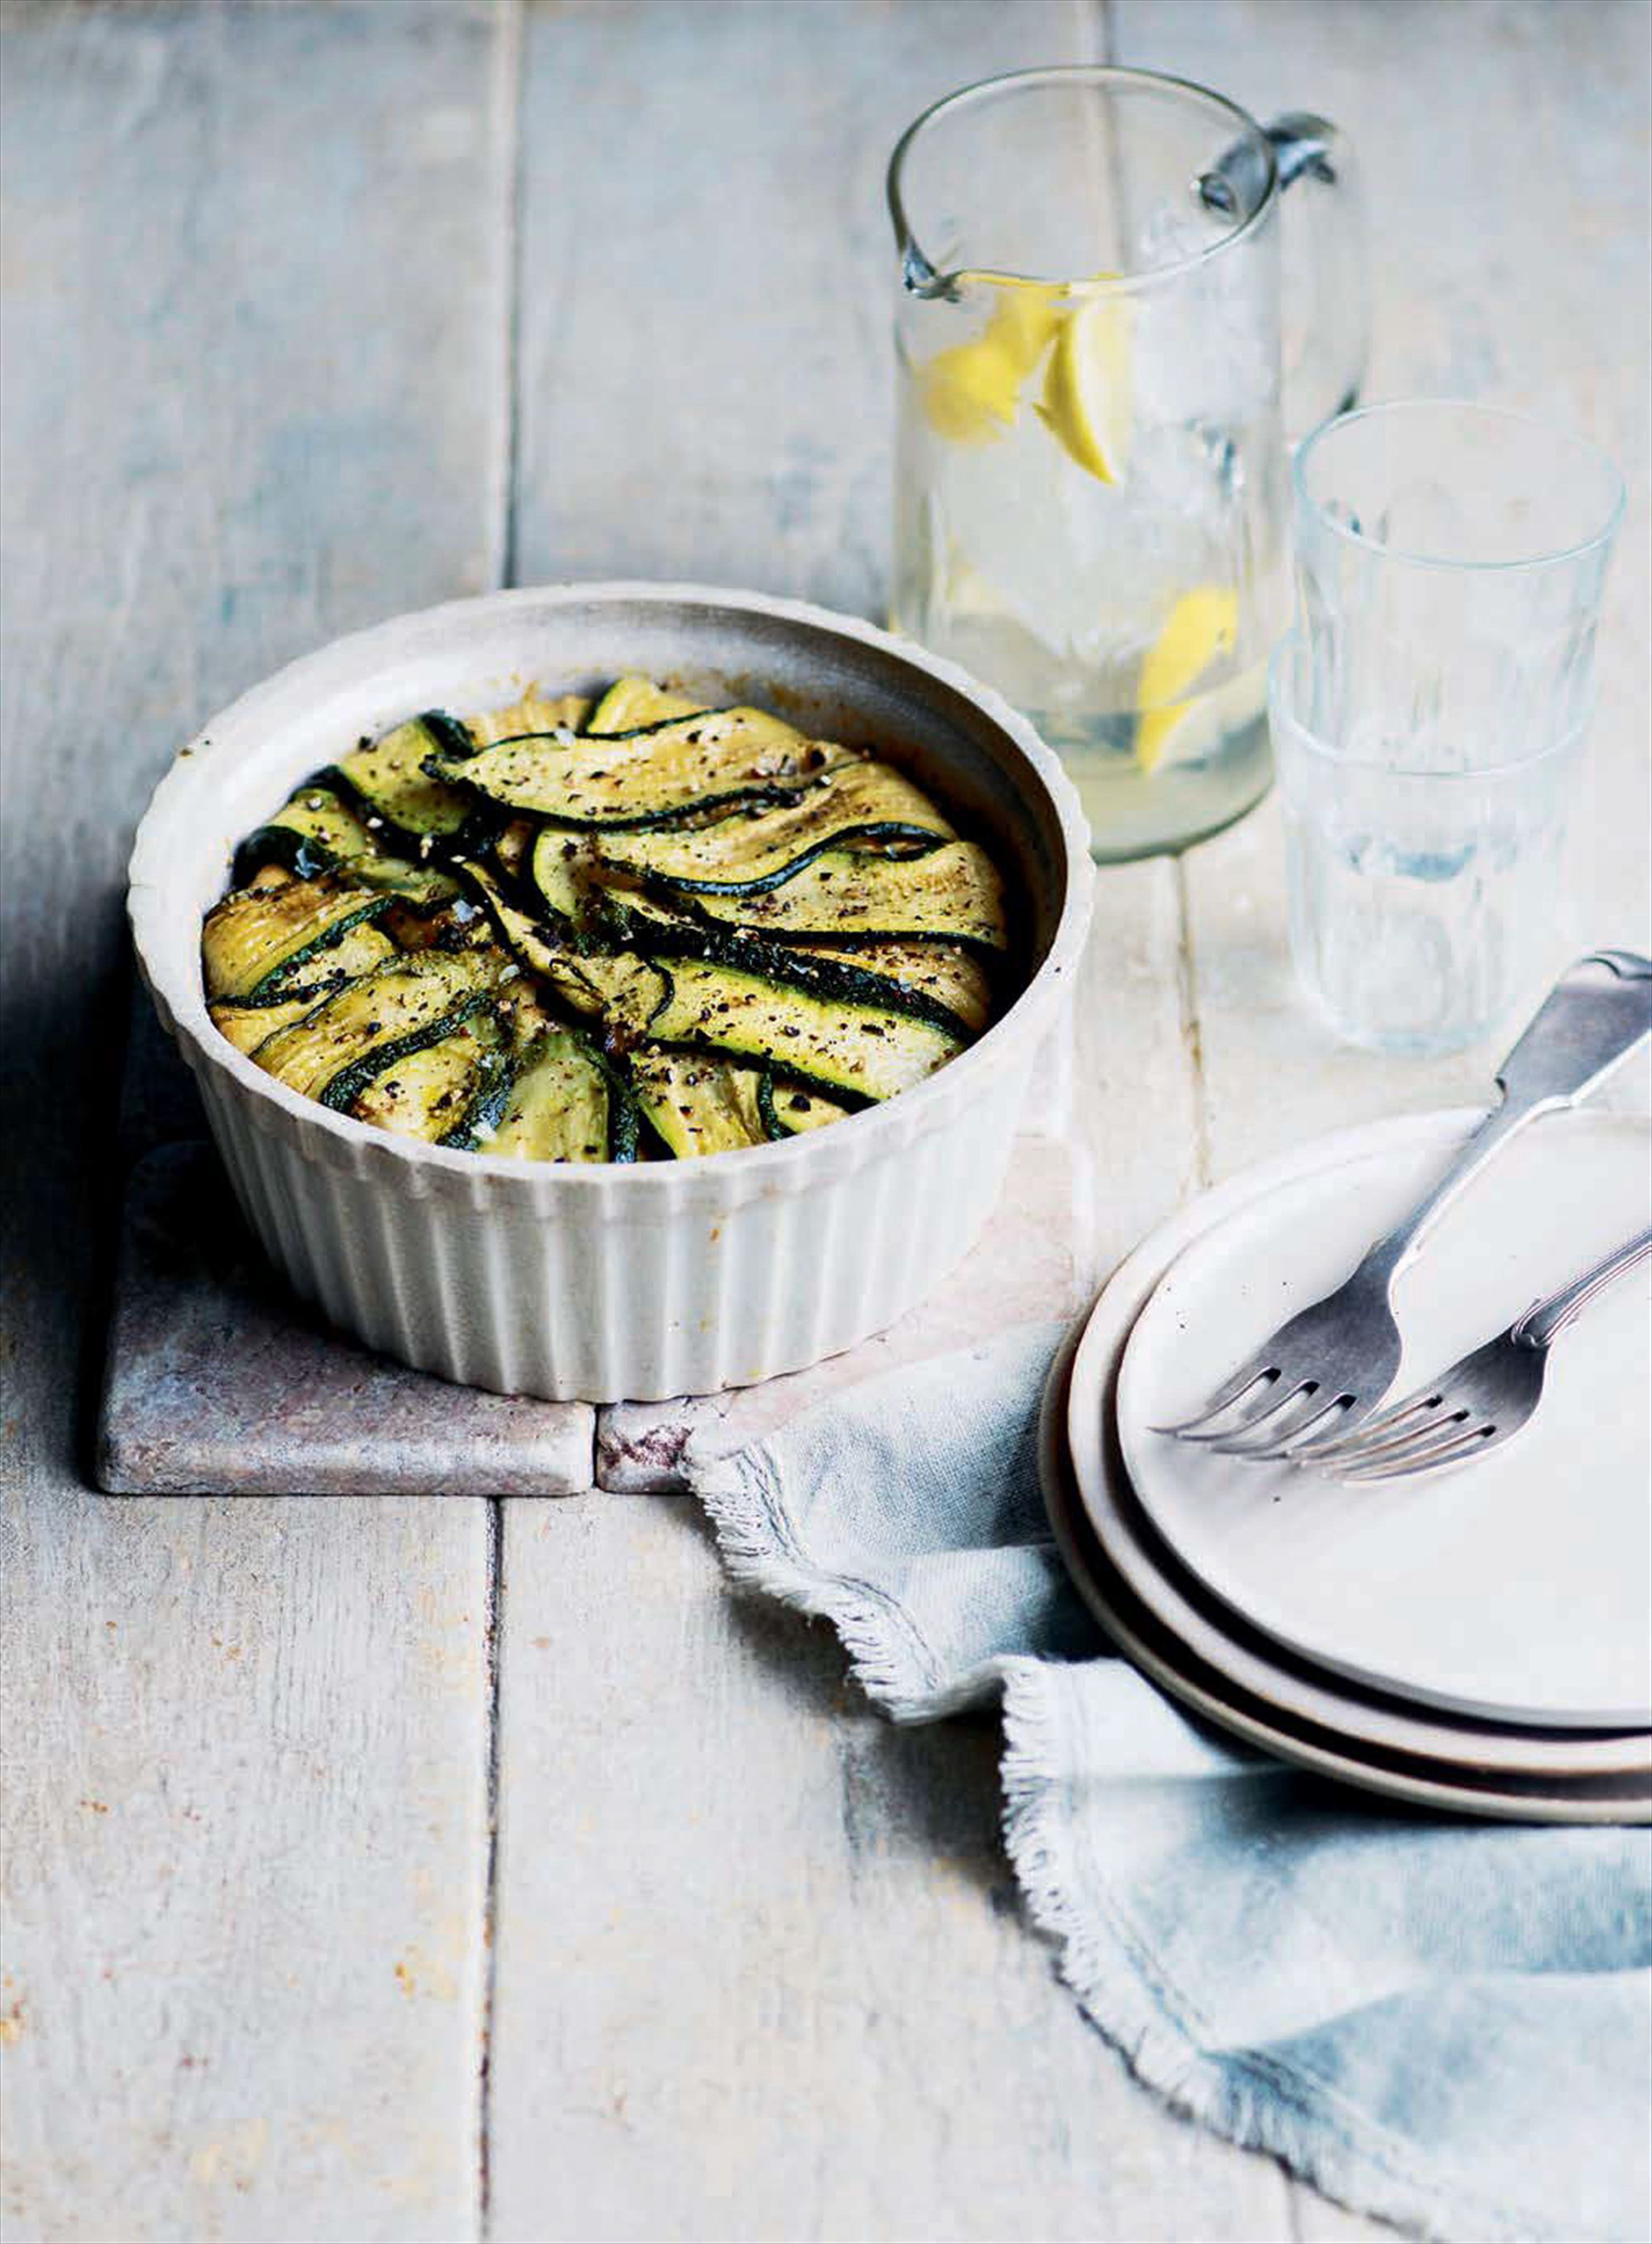 Courgette-topped baked pilaf